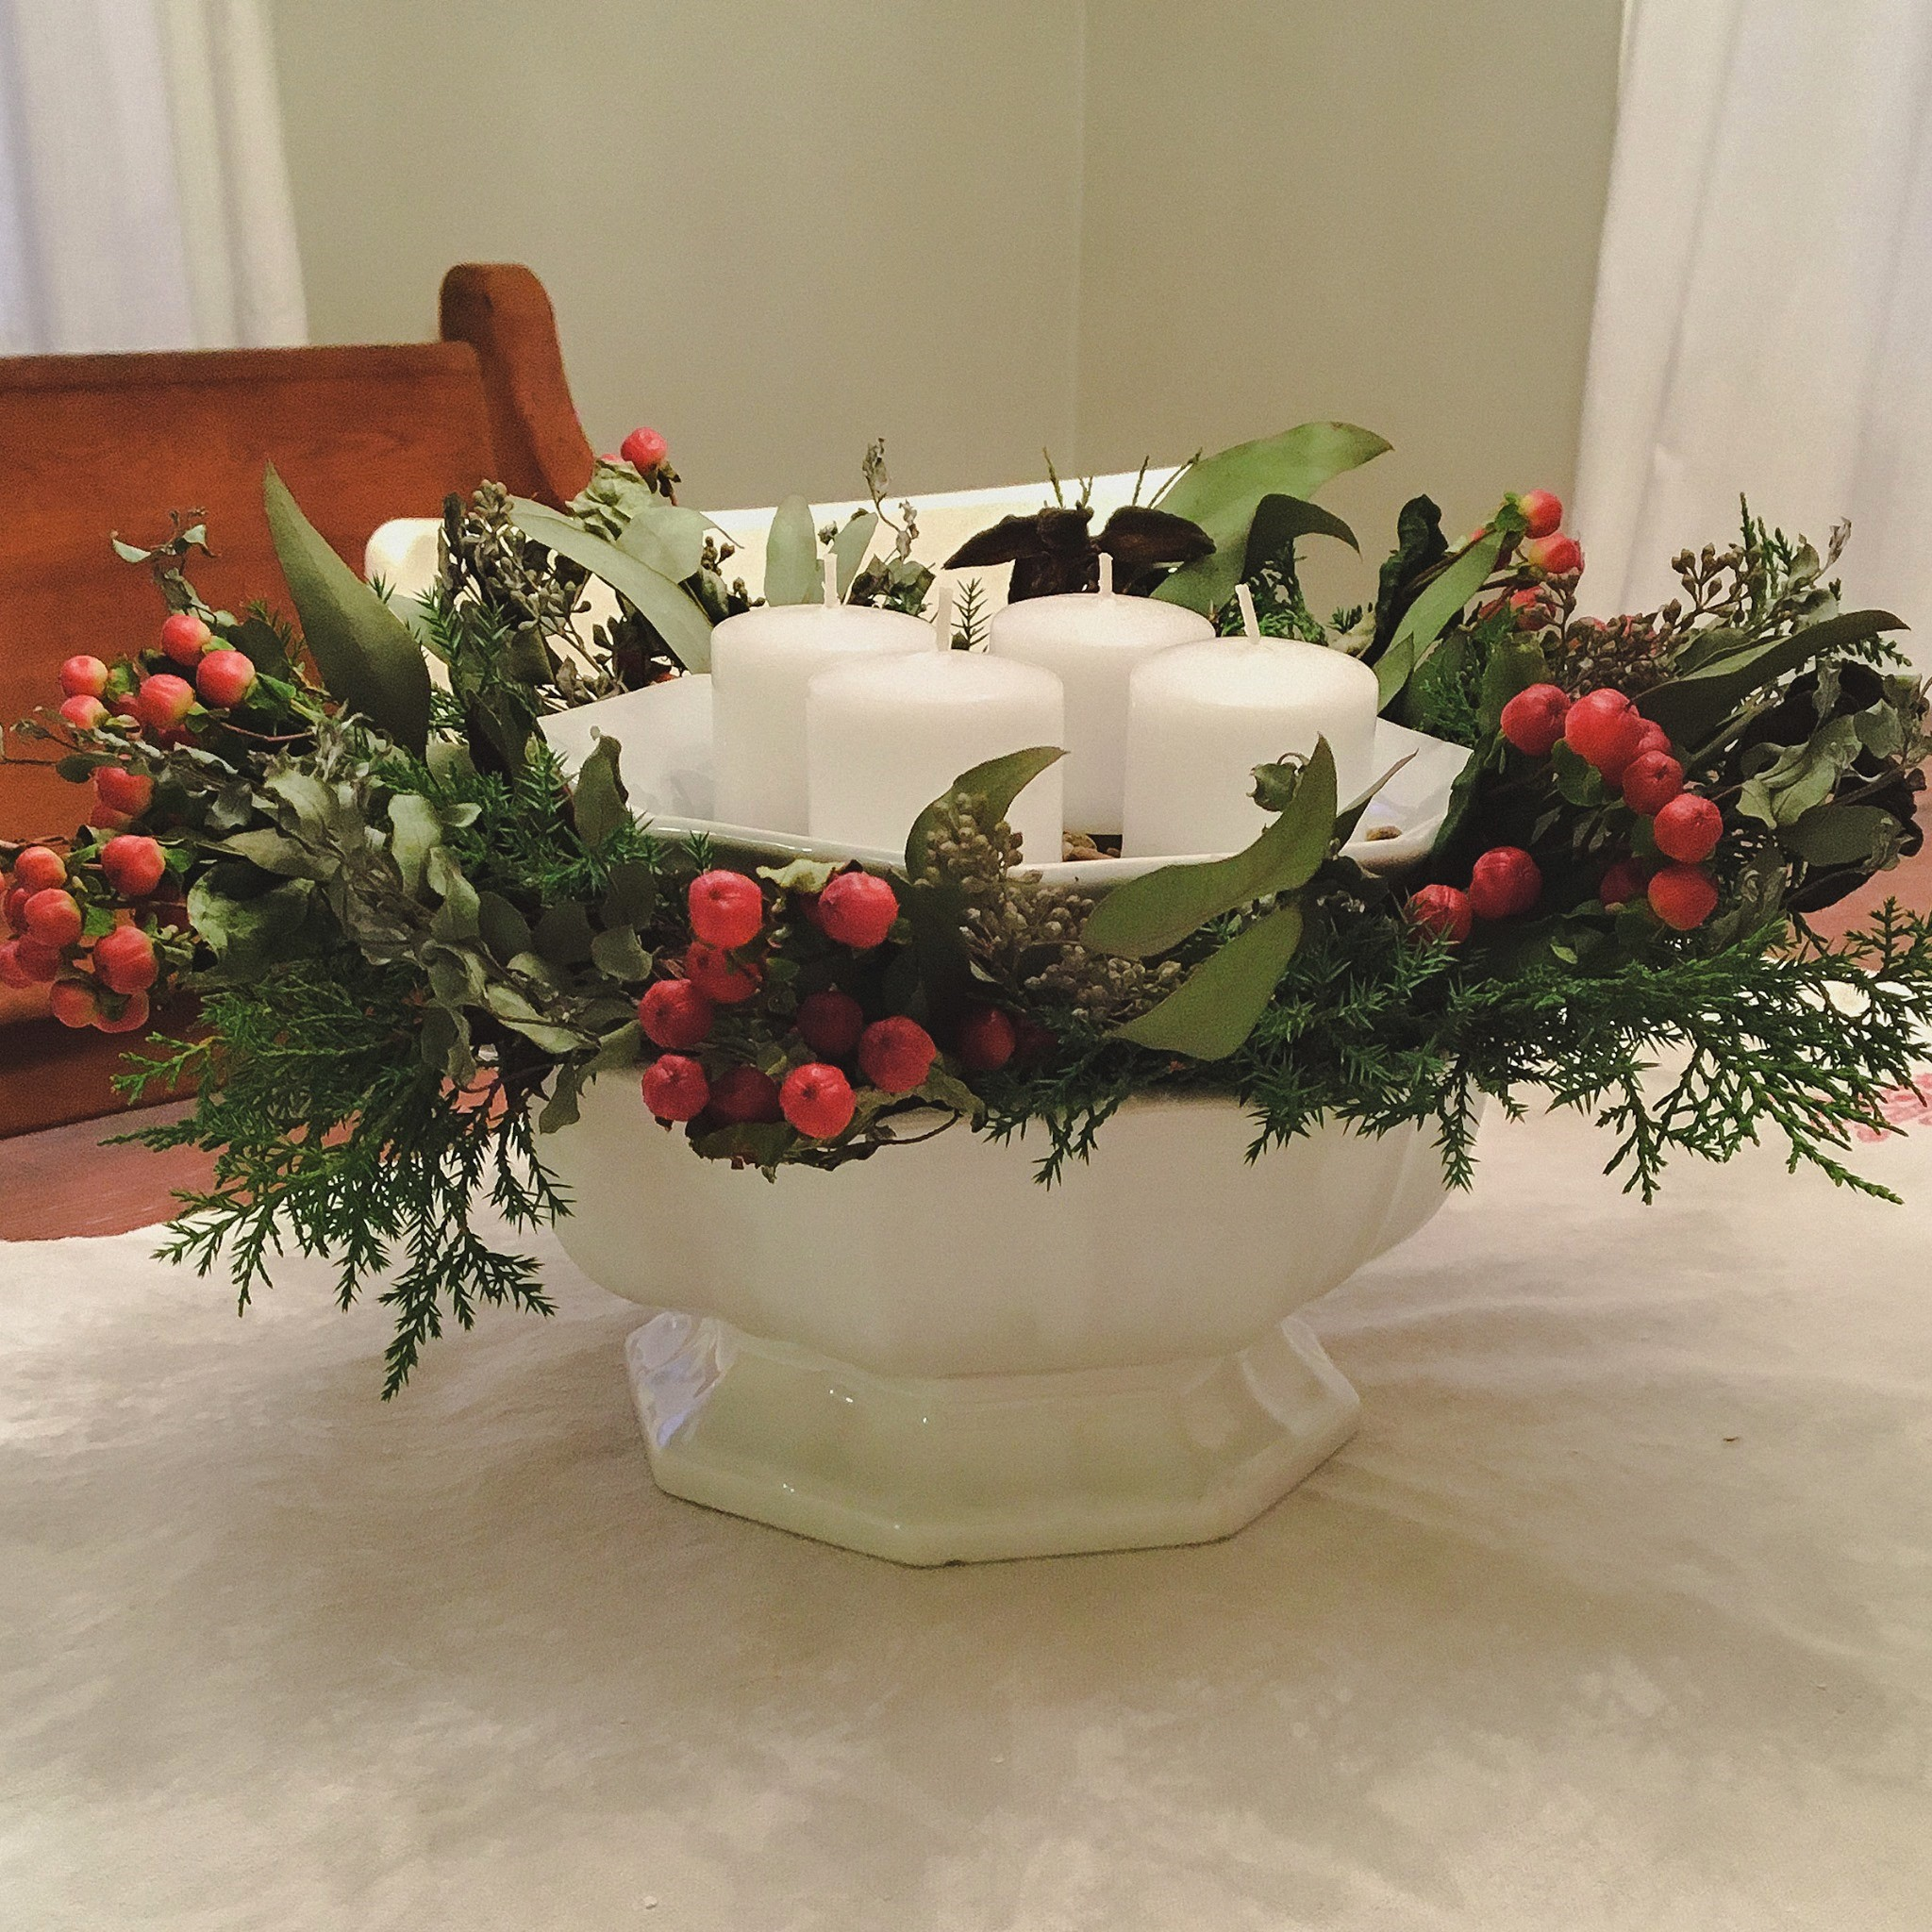 Inspiration for Creating a Simple Advent Wreath